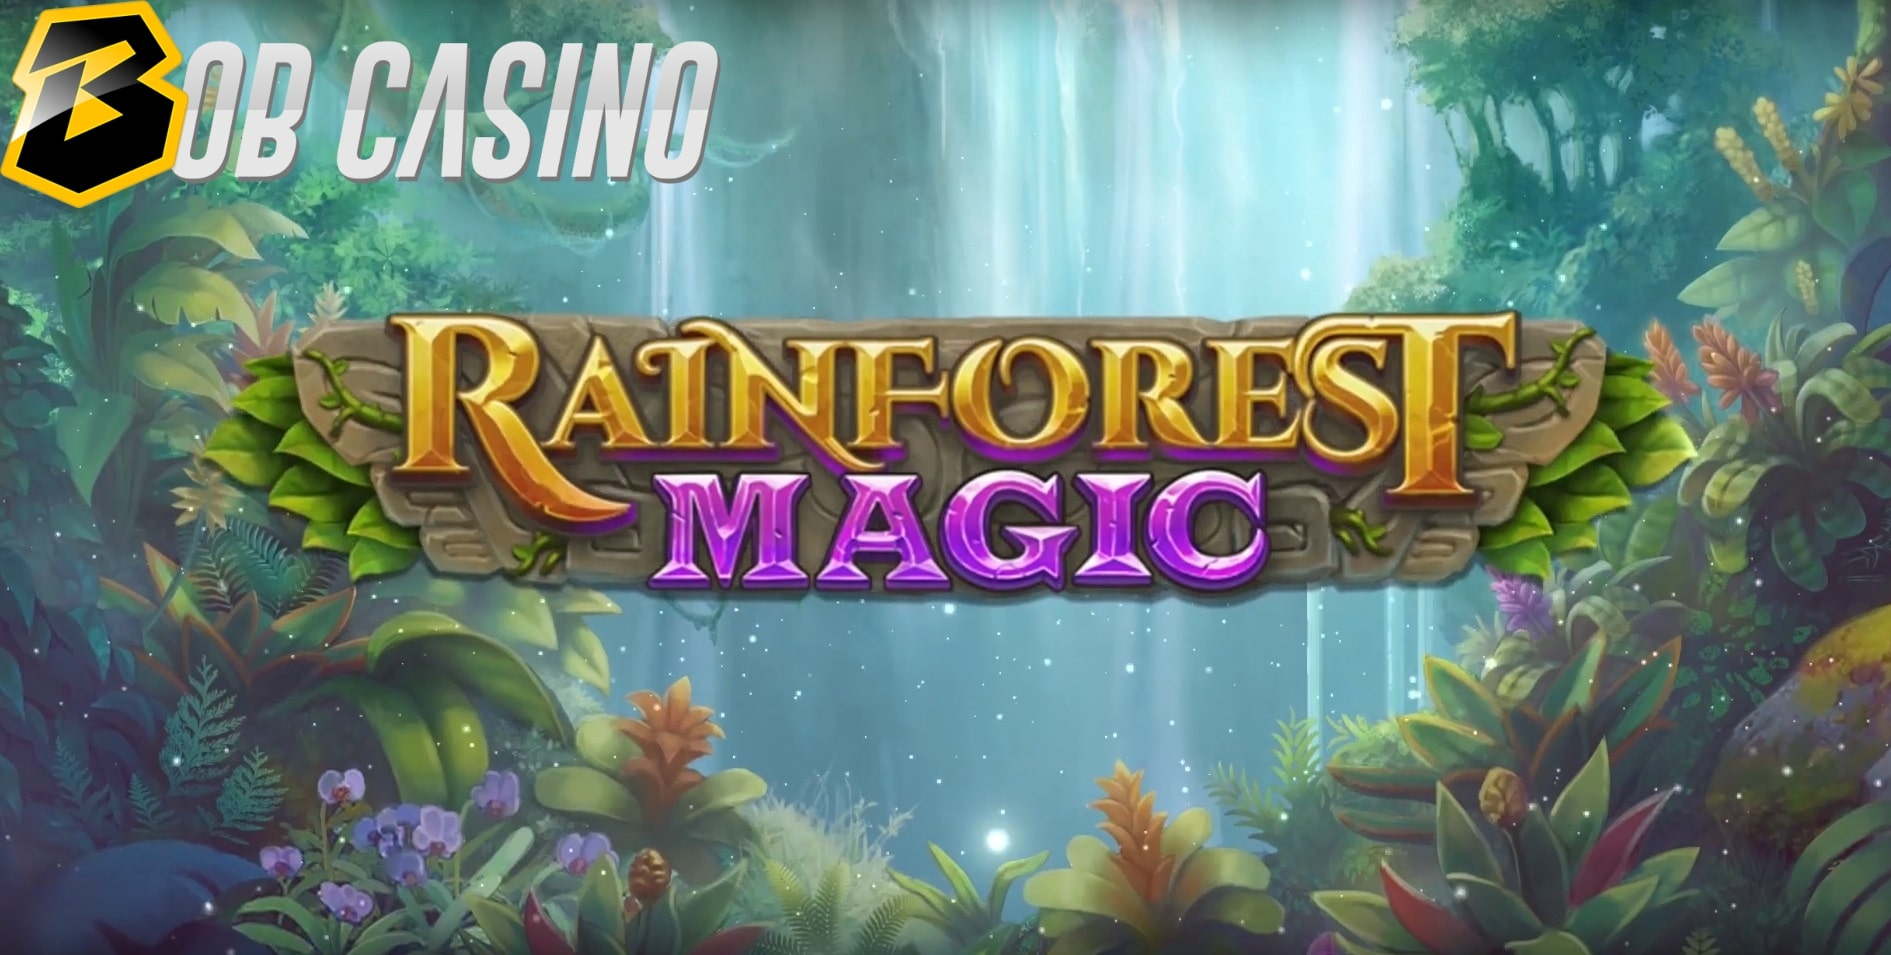 The tropical rainforest surrounding the logo of the new Rainforest Magic slot from Play'N Go.